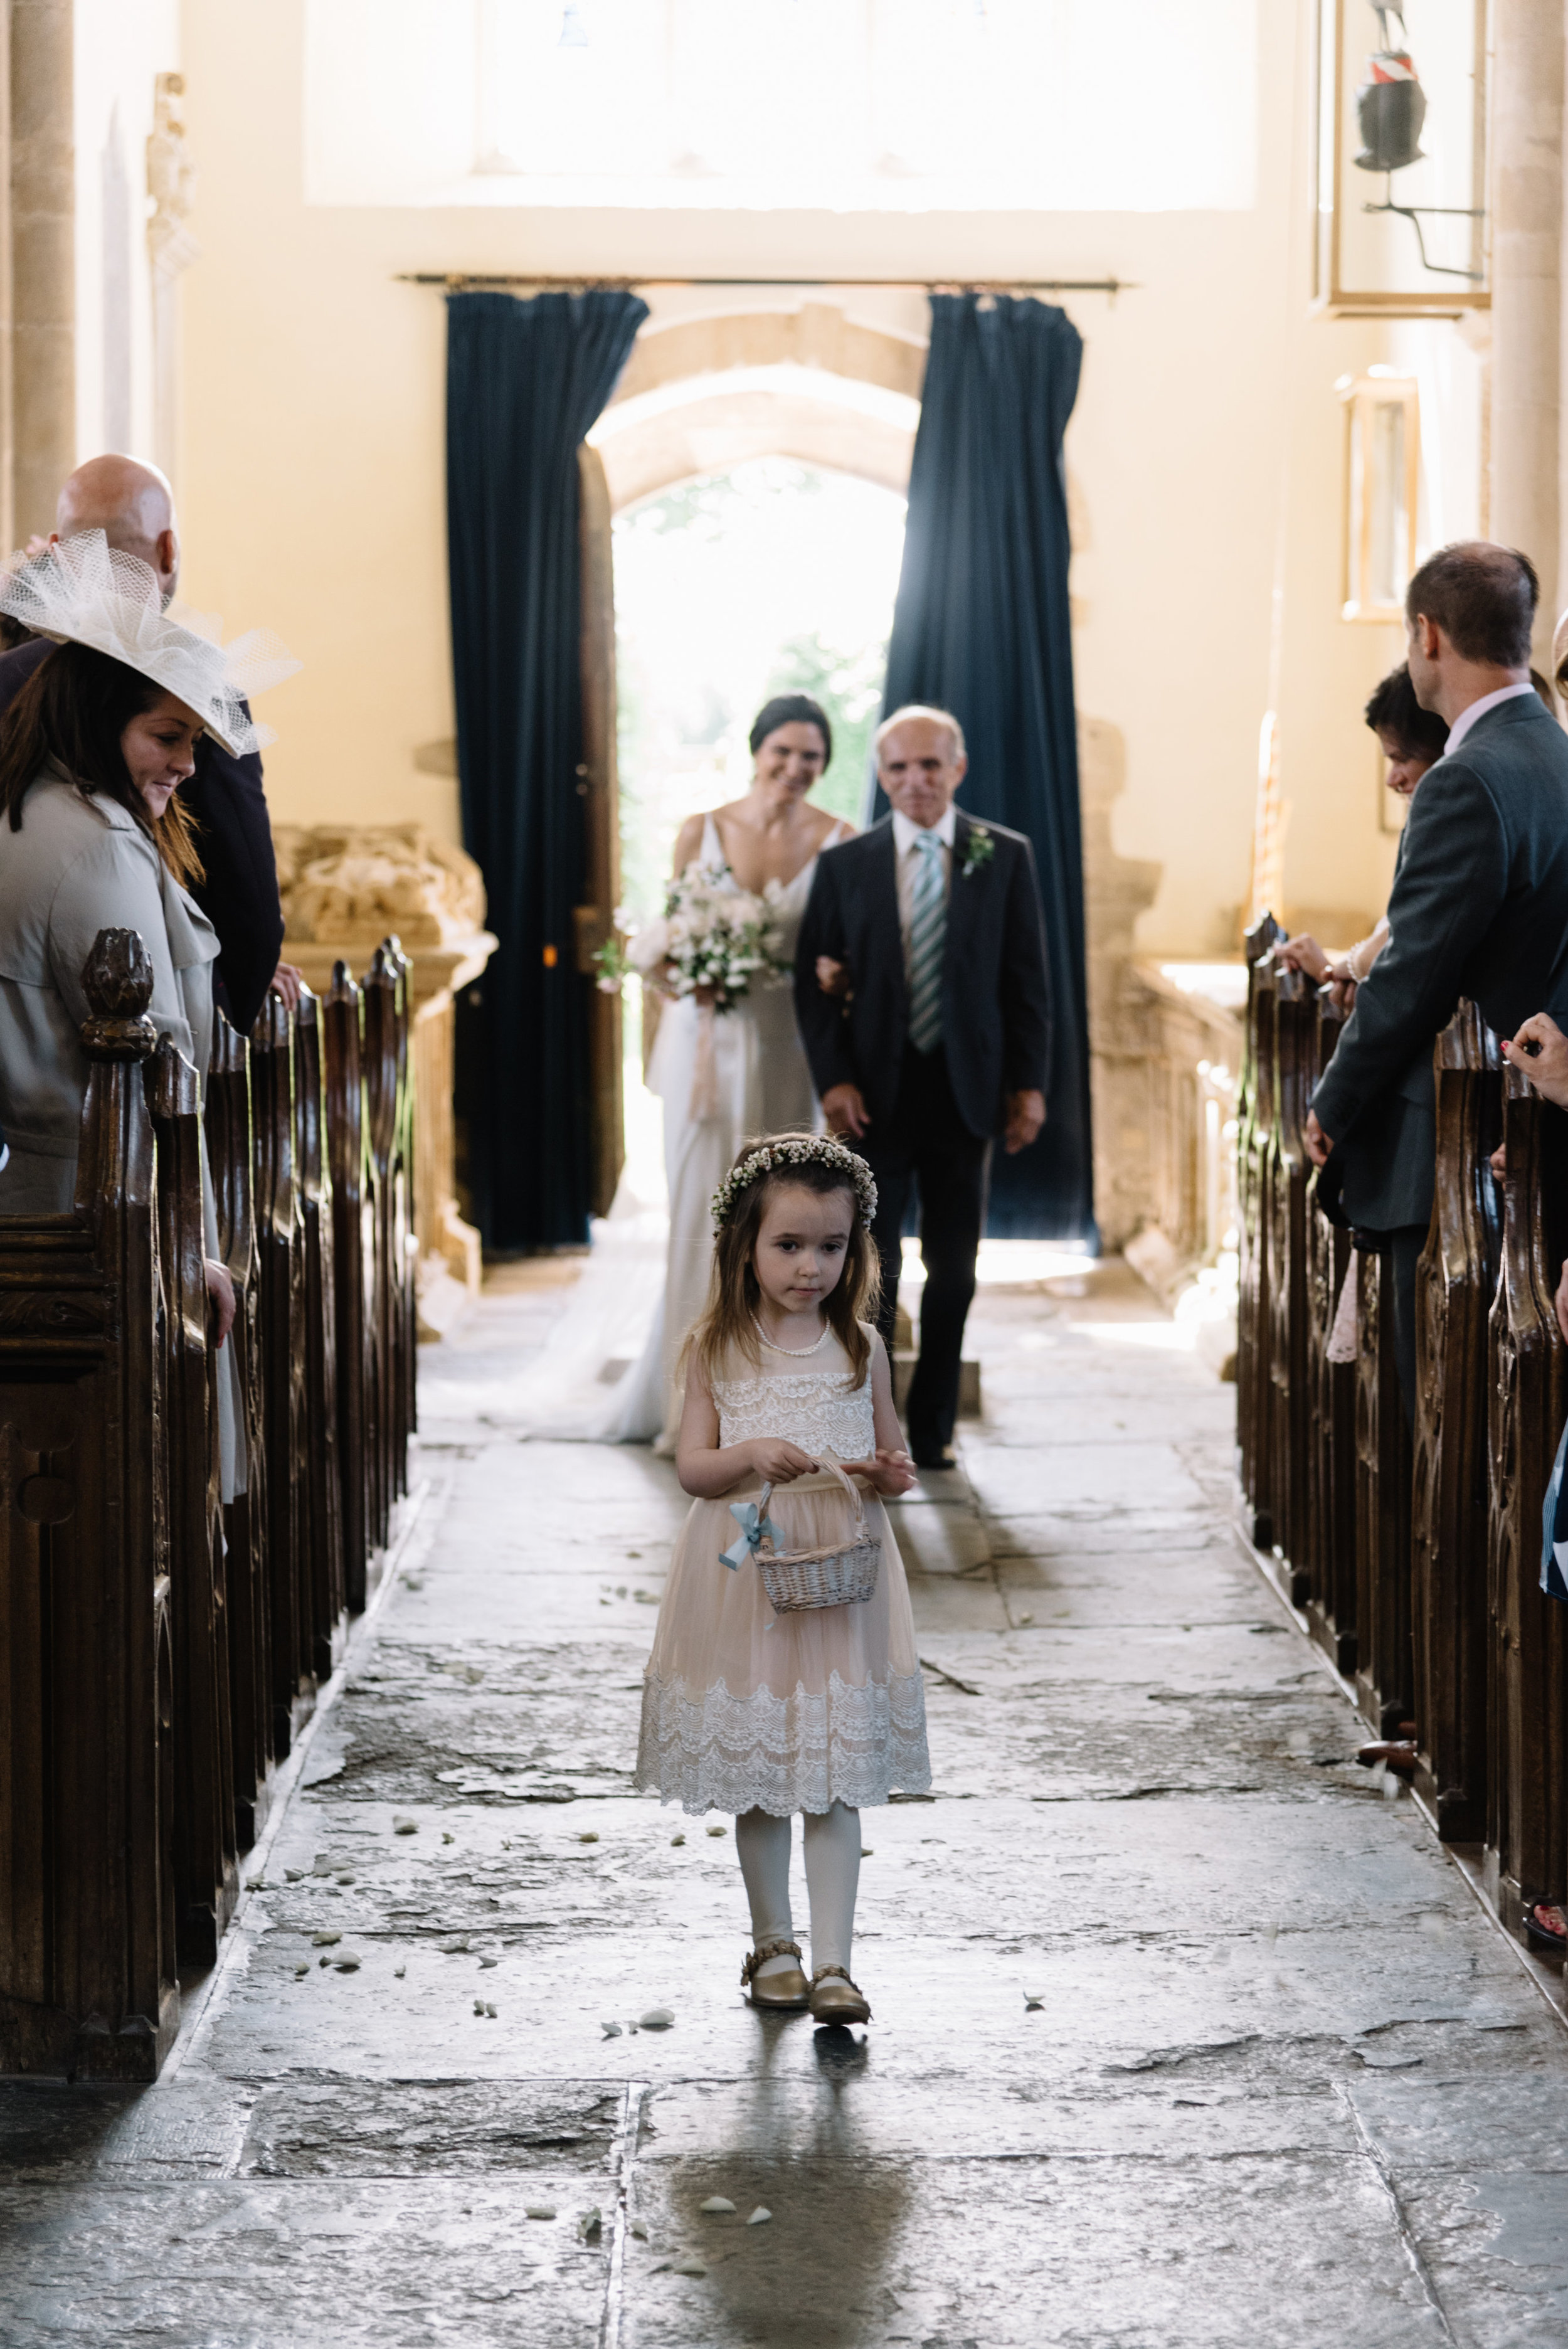 Luxury Wedding Planner UK | Jennifer & Timothy's English Country Manor Wedding Soft Pink Pale Blue White and Silver Toned Green Neutral Tones American Bride North Cadbury Court | Nicole Colwell Photography 0255.jpg